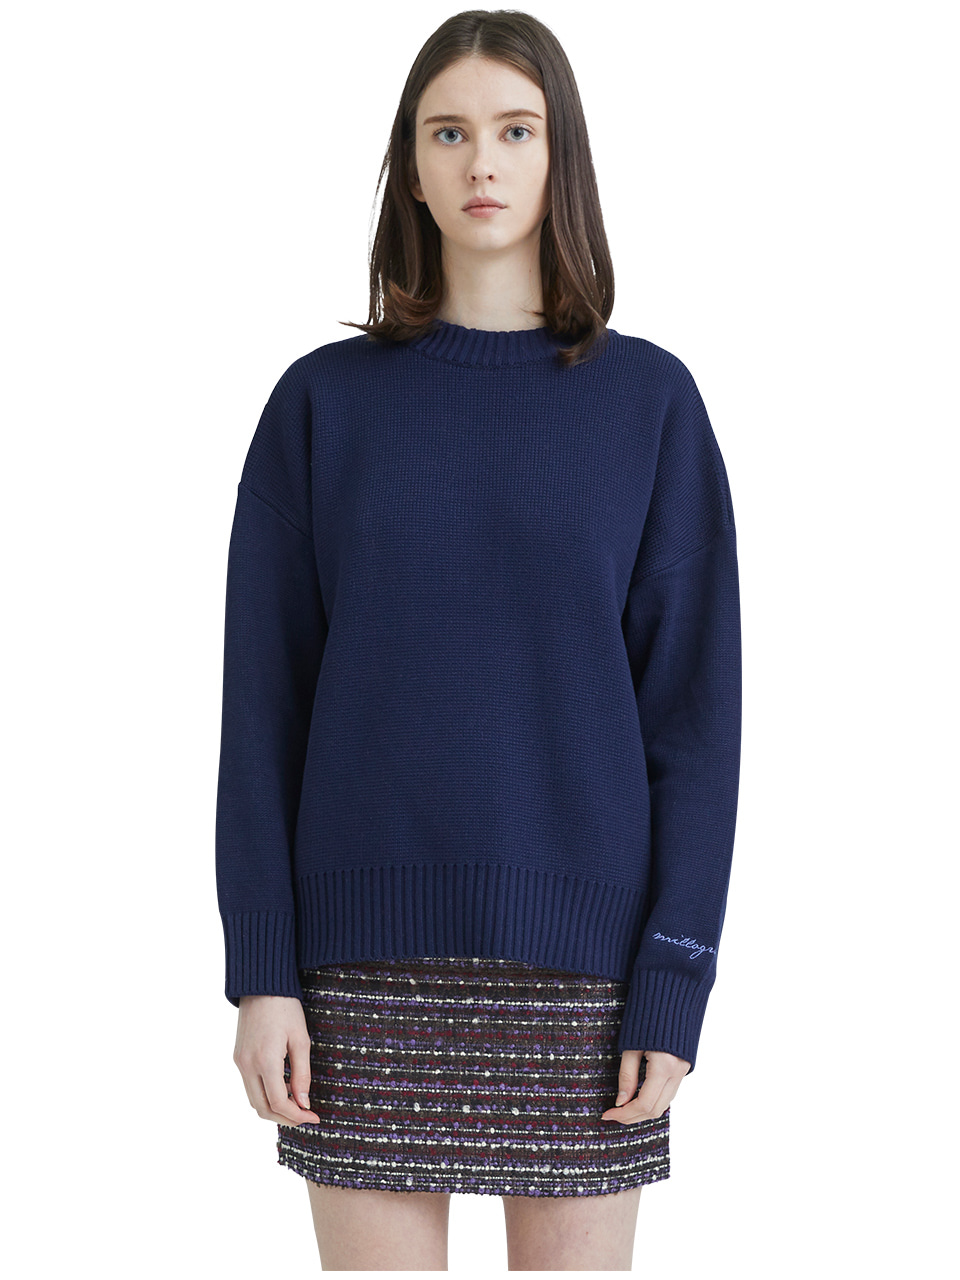 embroideried cuffs sweater - navy